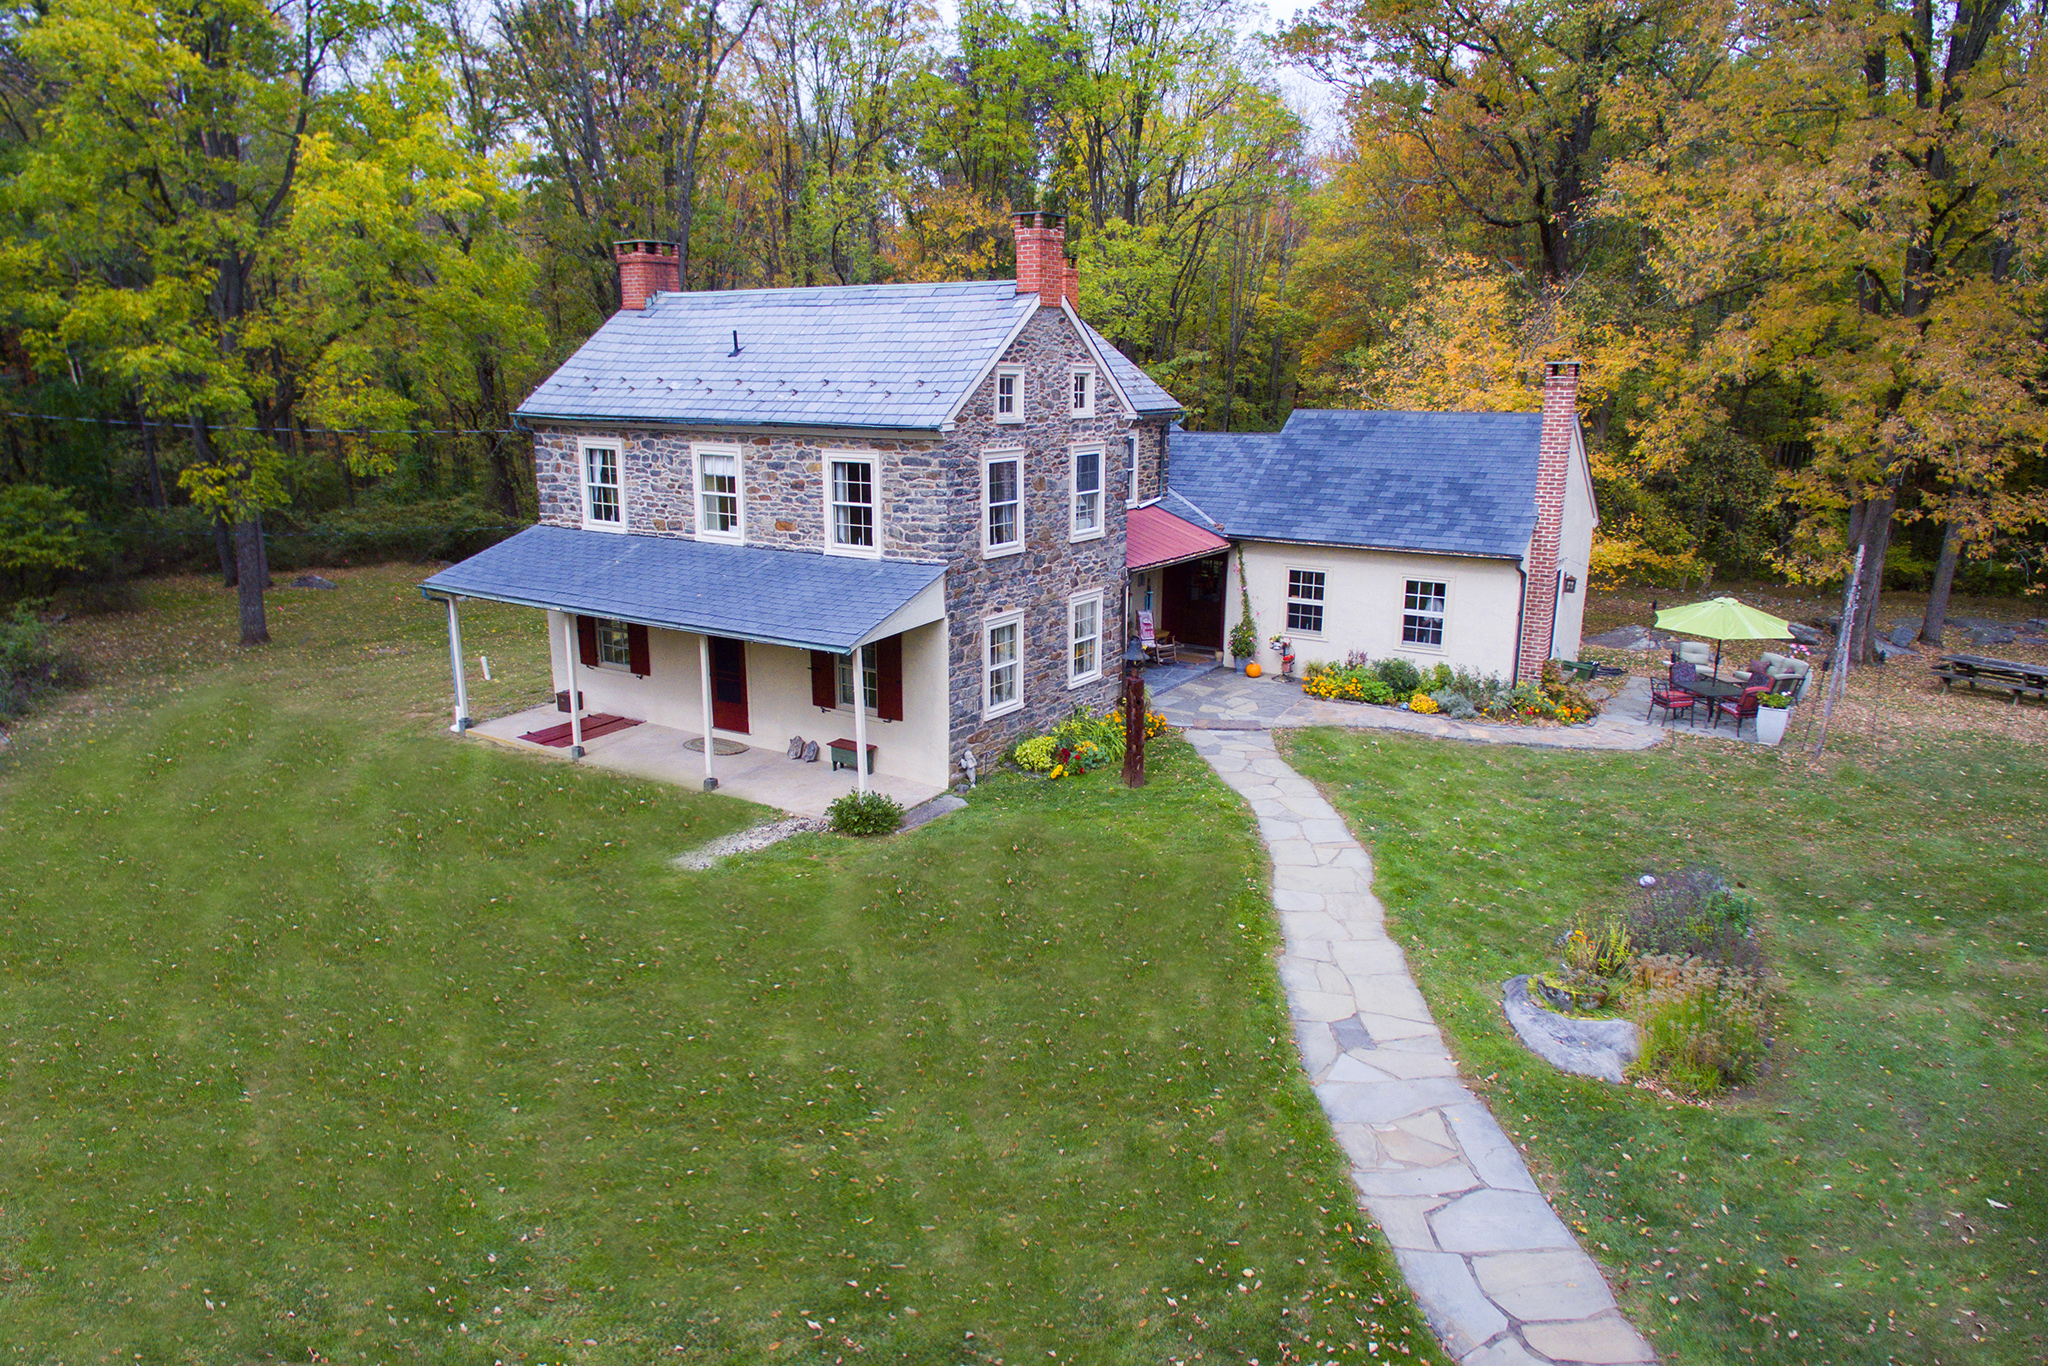 Fern Rock Bucks County Stone Farm House For Sale In